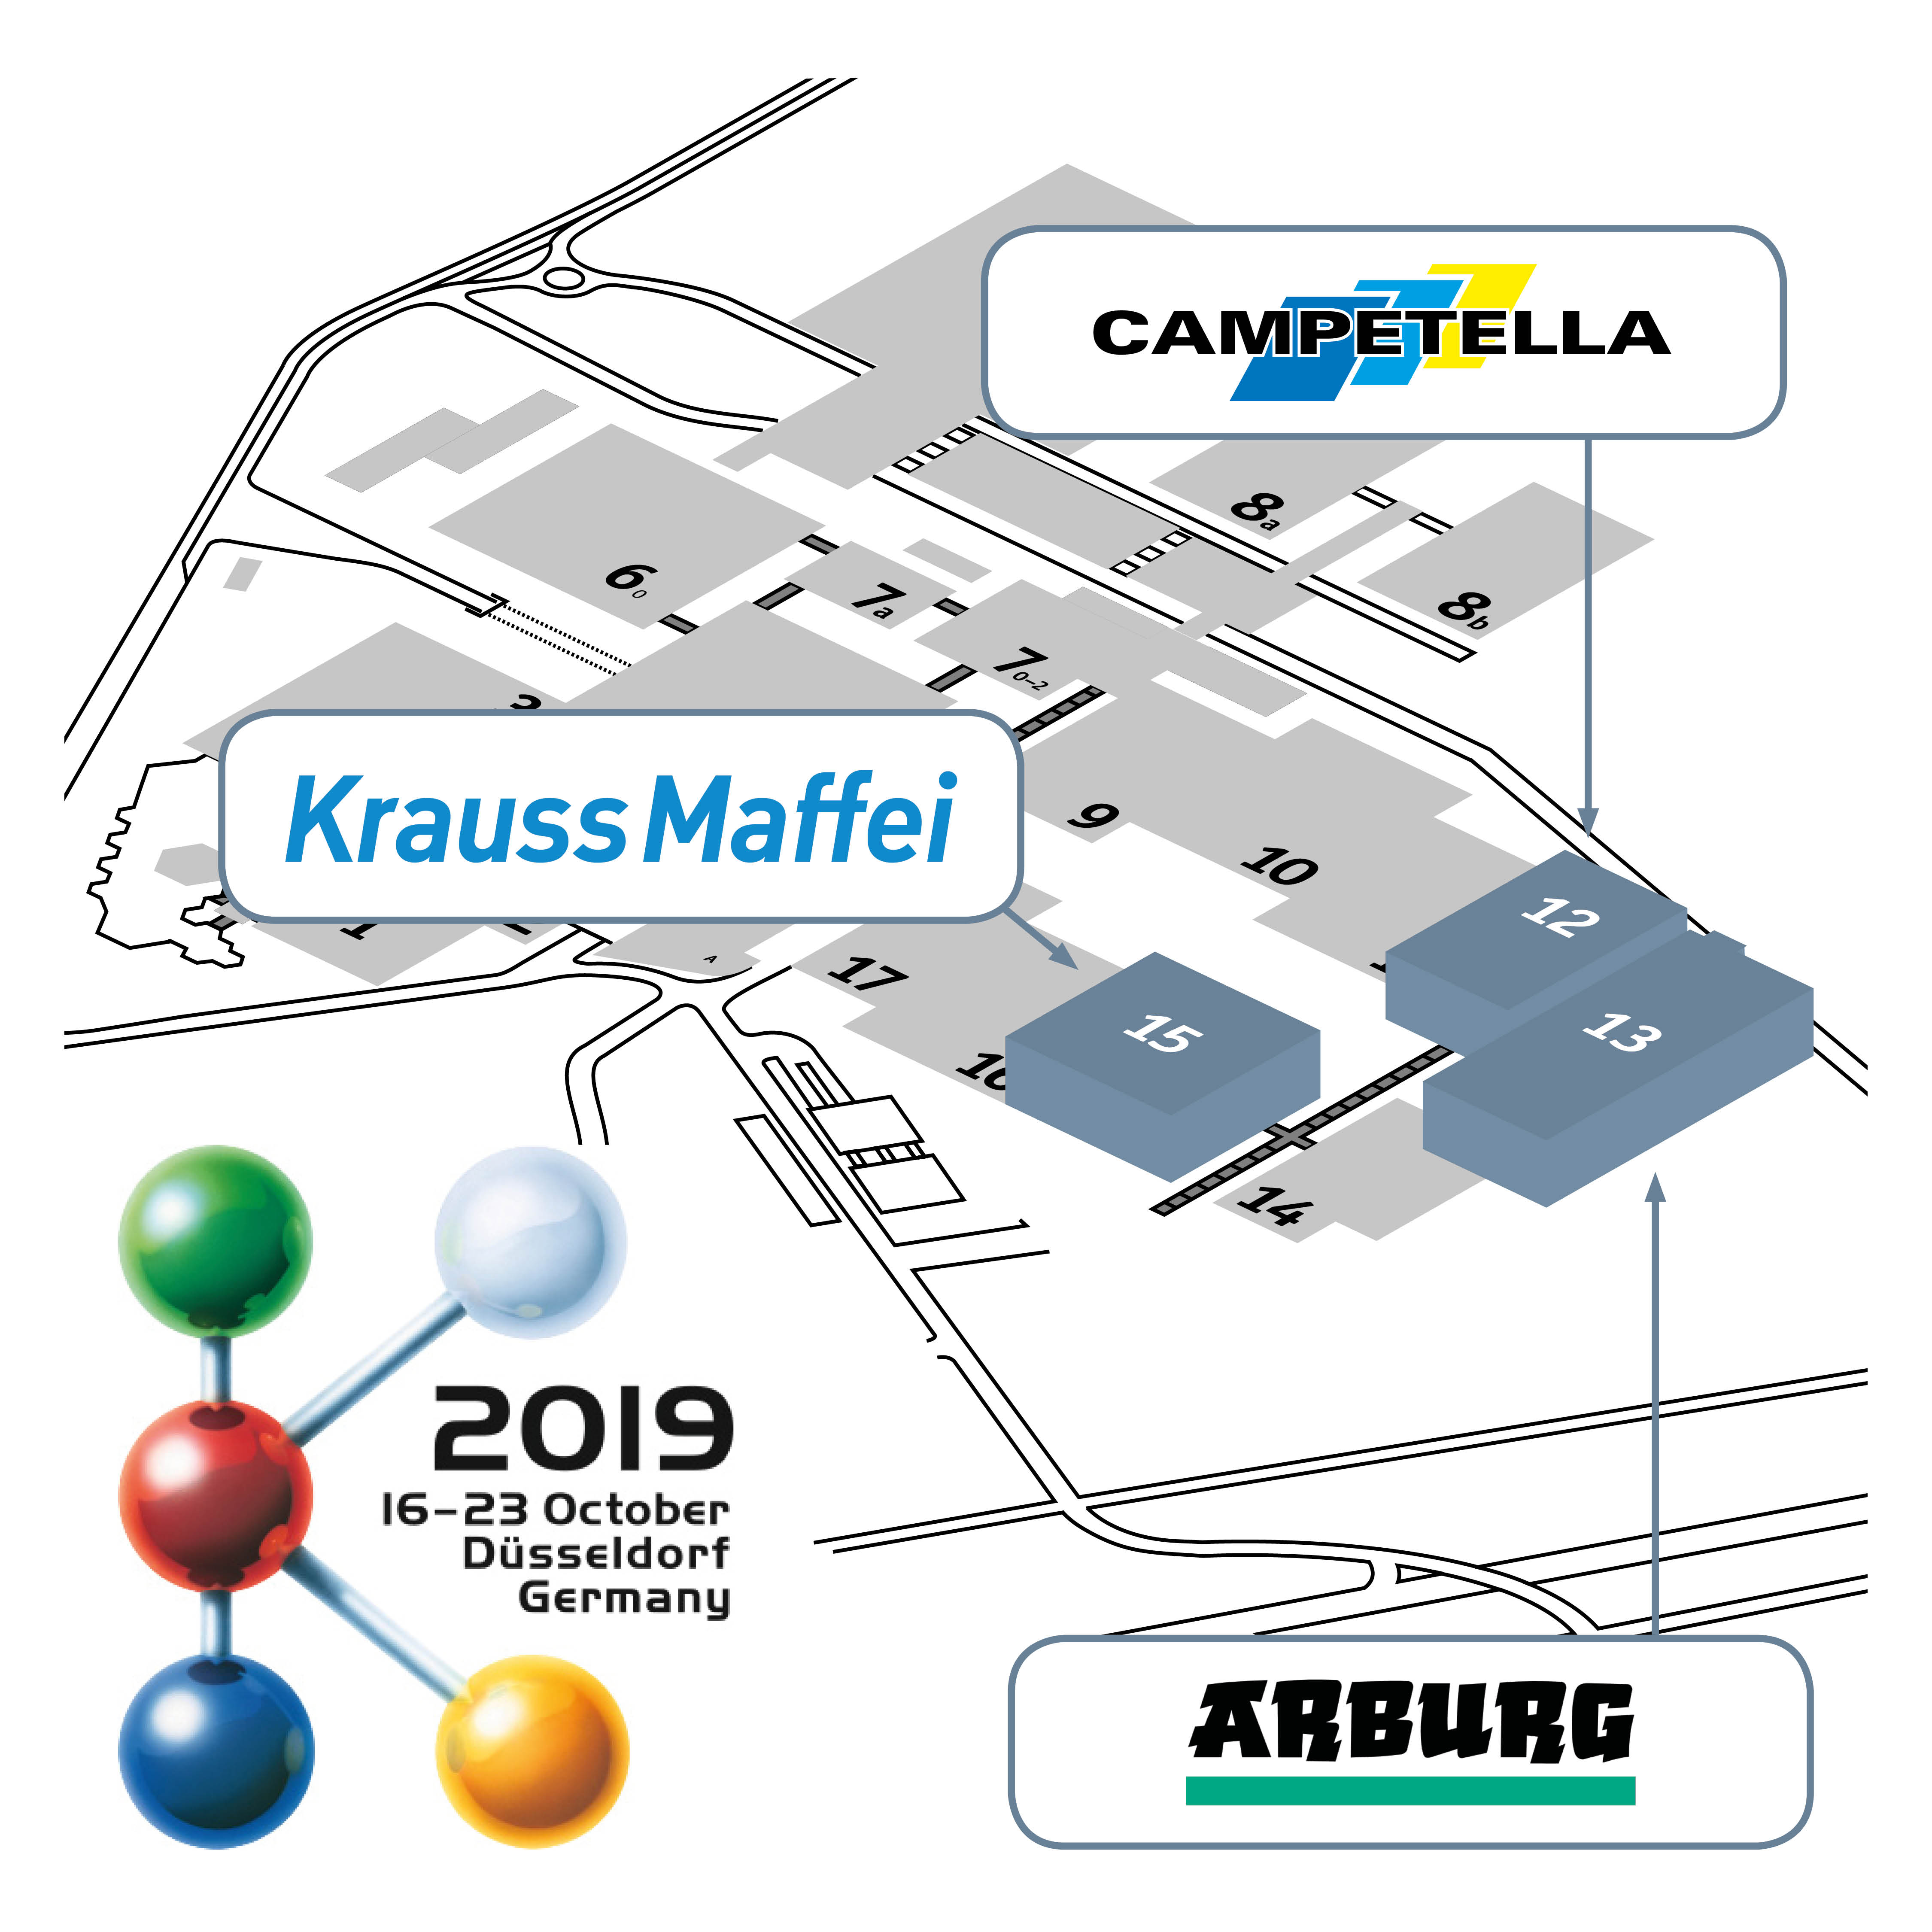 k-2019-campetella-robots-mobilizes-iml-performance